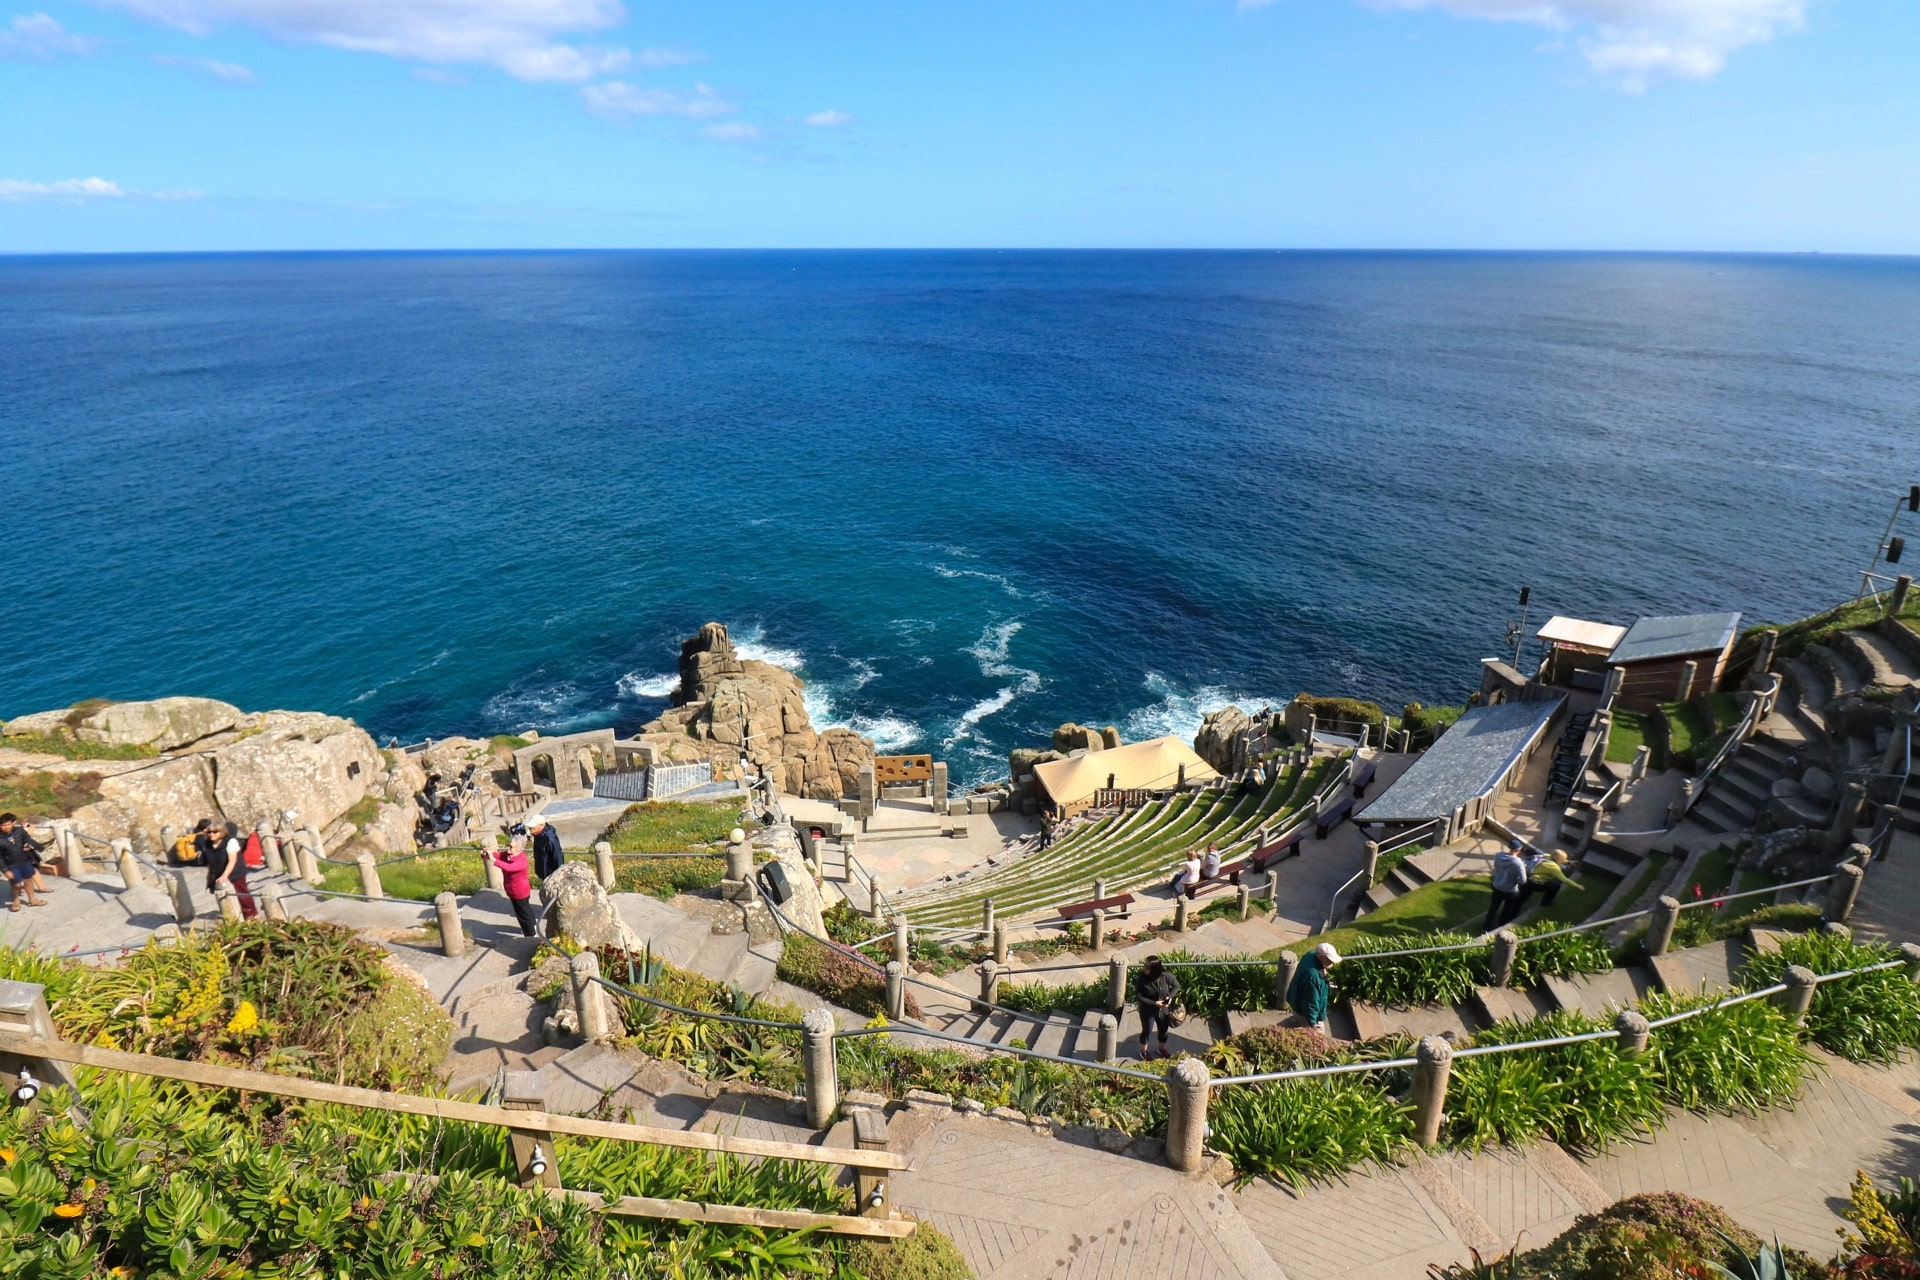 theatre-on-cliff-edge-going-into-blue-sea-the-minack-theatre-cornwall-hidden-gems